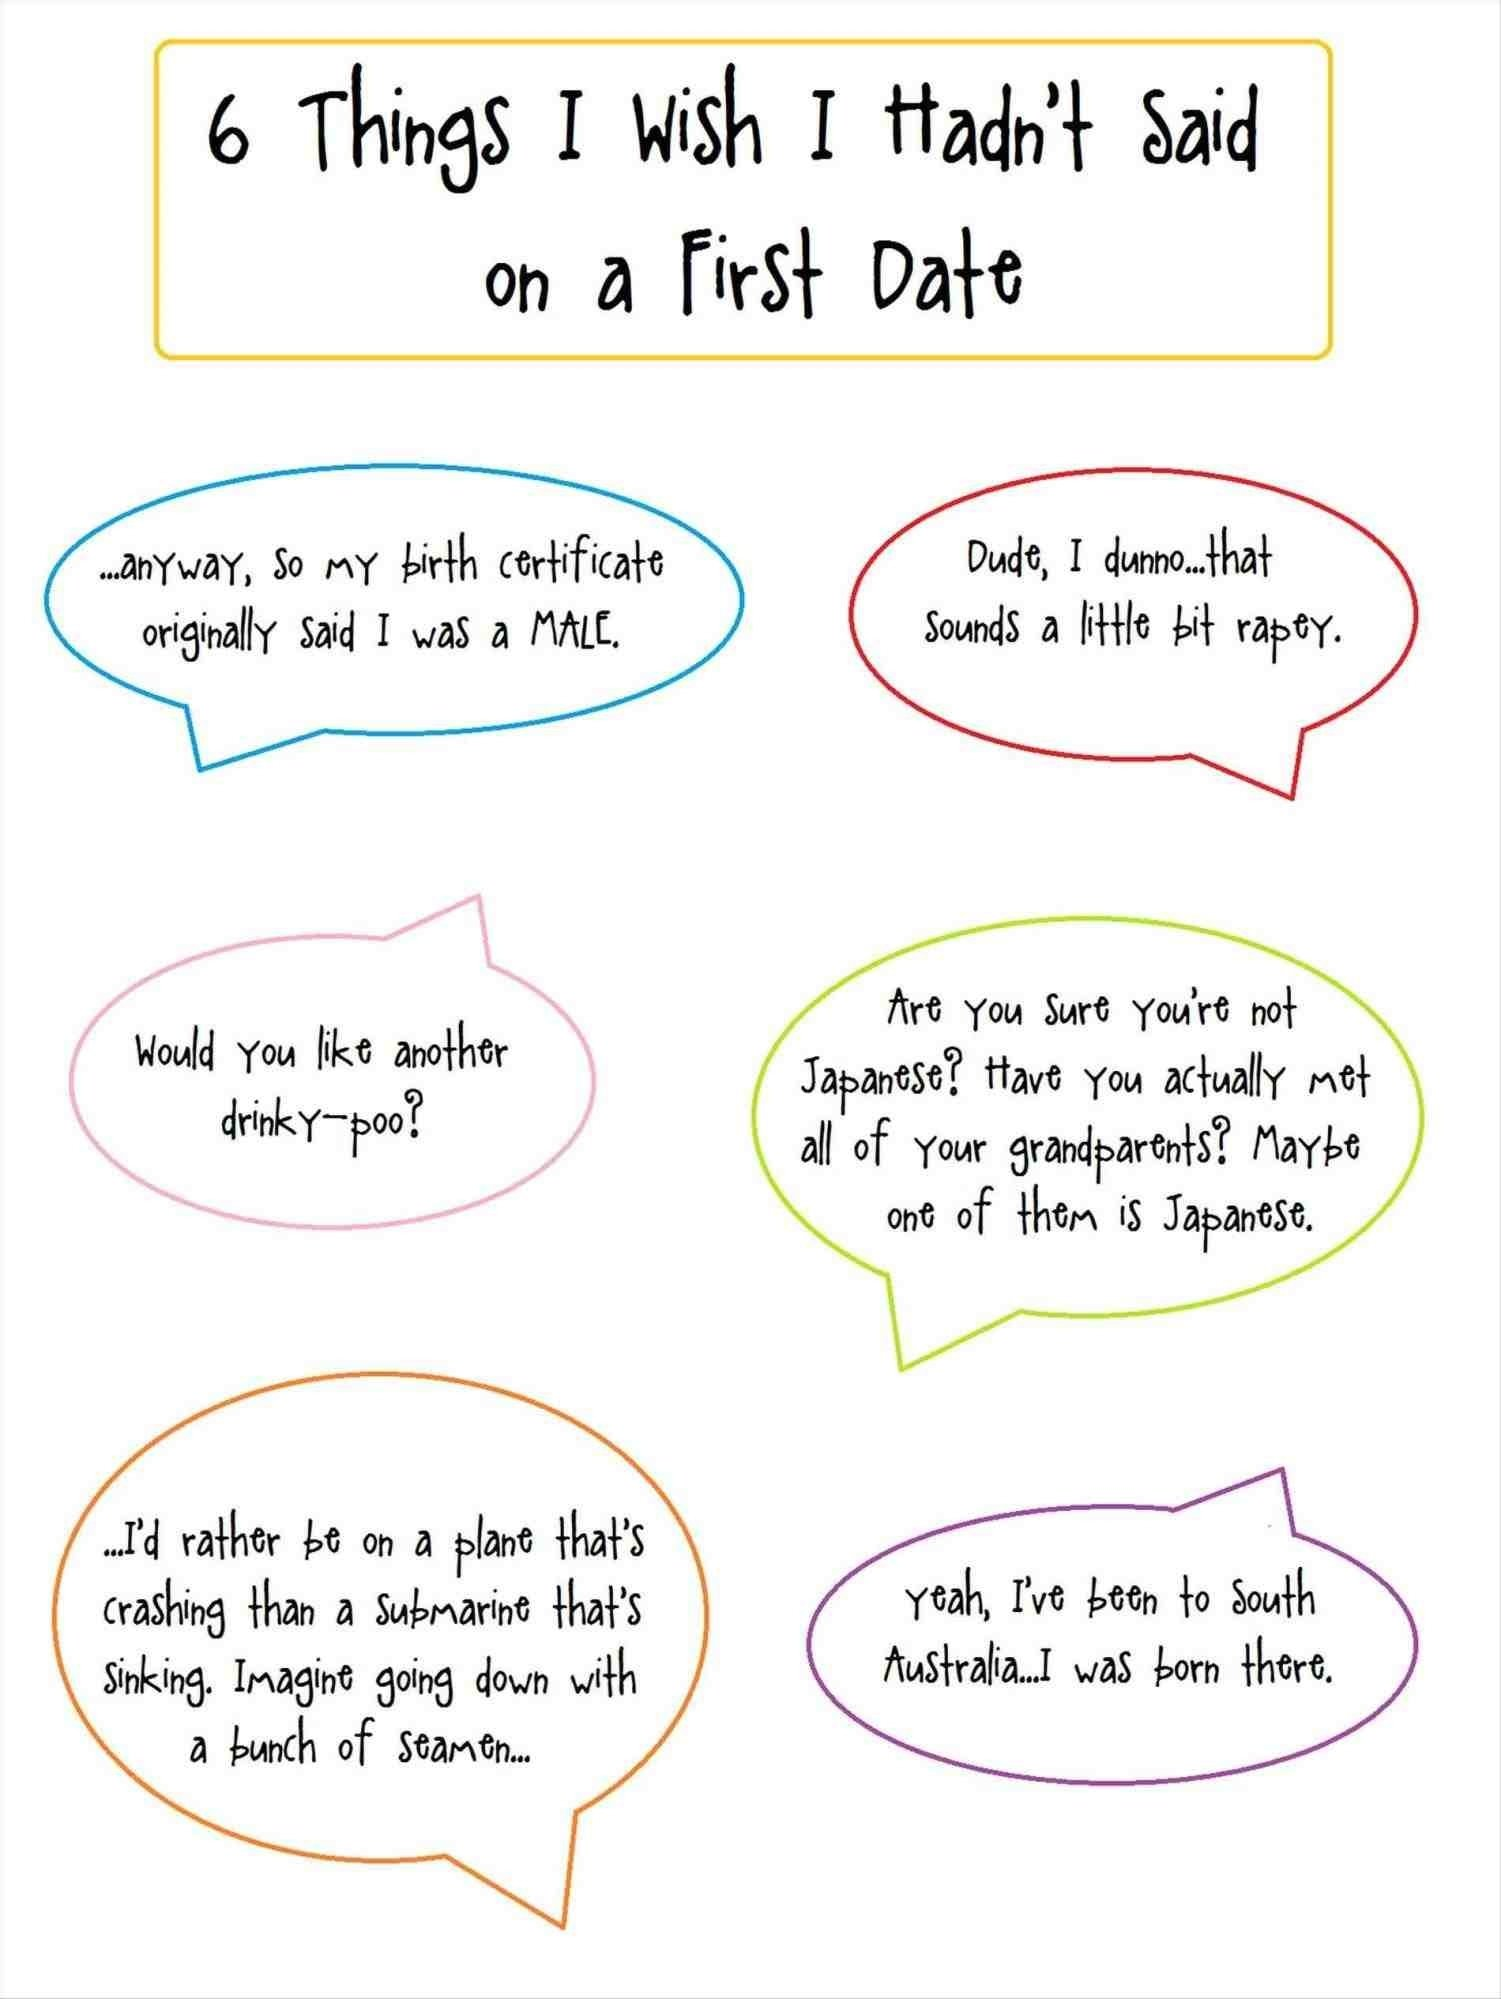 Fun ideas for first dates